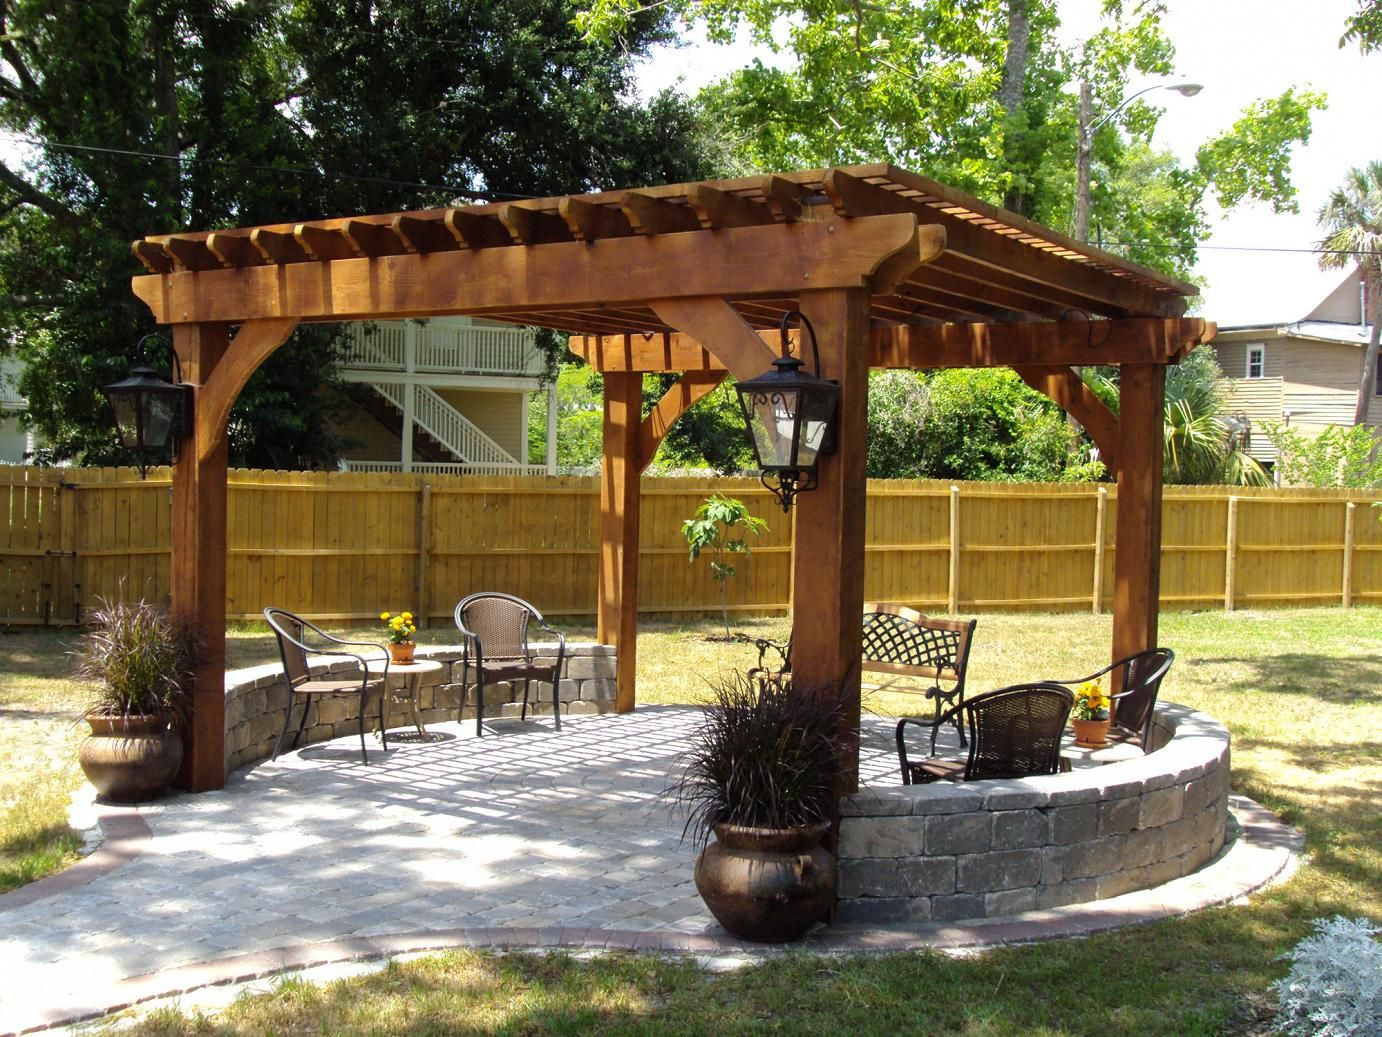 Outdoor Pergolas-El Paso TX Landscape Designs & Outdoor Living Areas-We offer Landscape Design, Outdoor Patios & Pergolas, Outdoor Living Spaces, Stonescapes, Residential & Commercial Landscaping, Irrigation Installation & Repairs, Drainage Systems, Landscape Lighting, Outdoor Living Spaces, Tree Service, Lawn Service, and more.